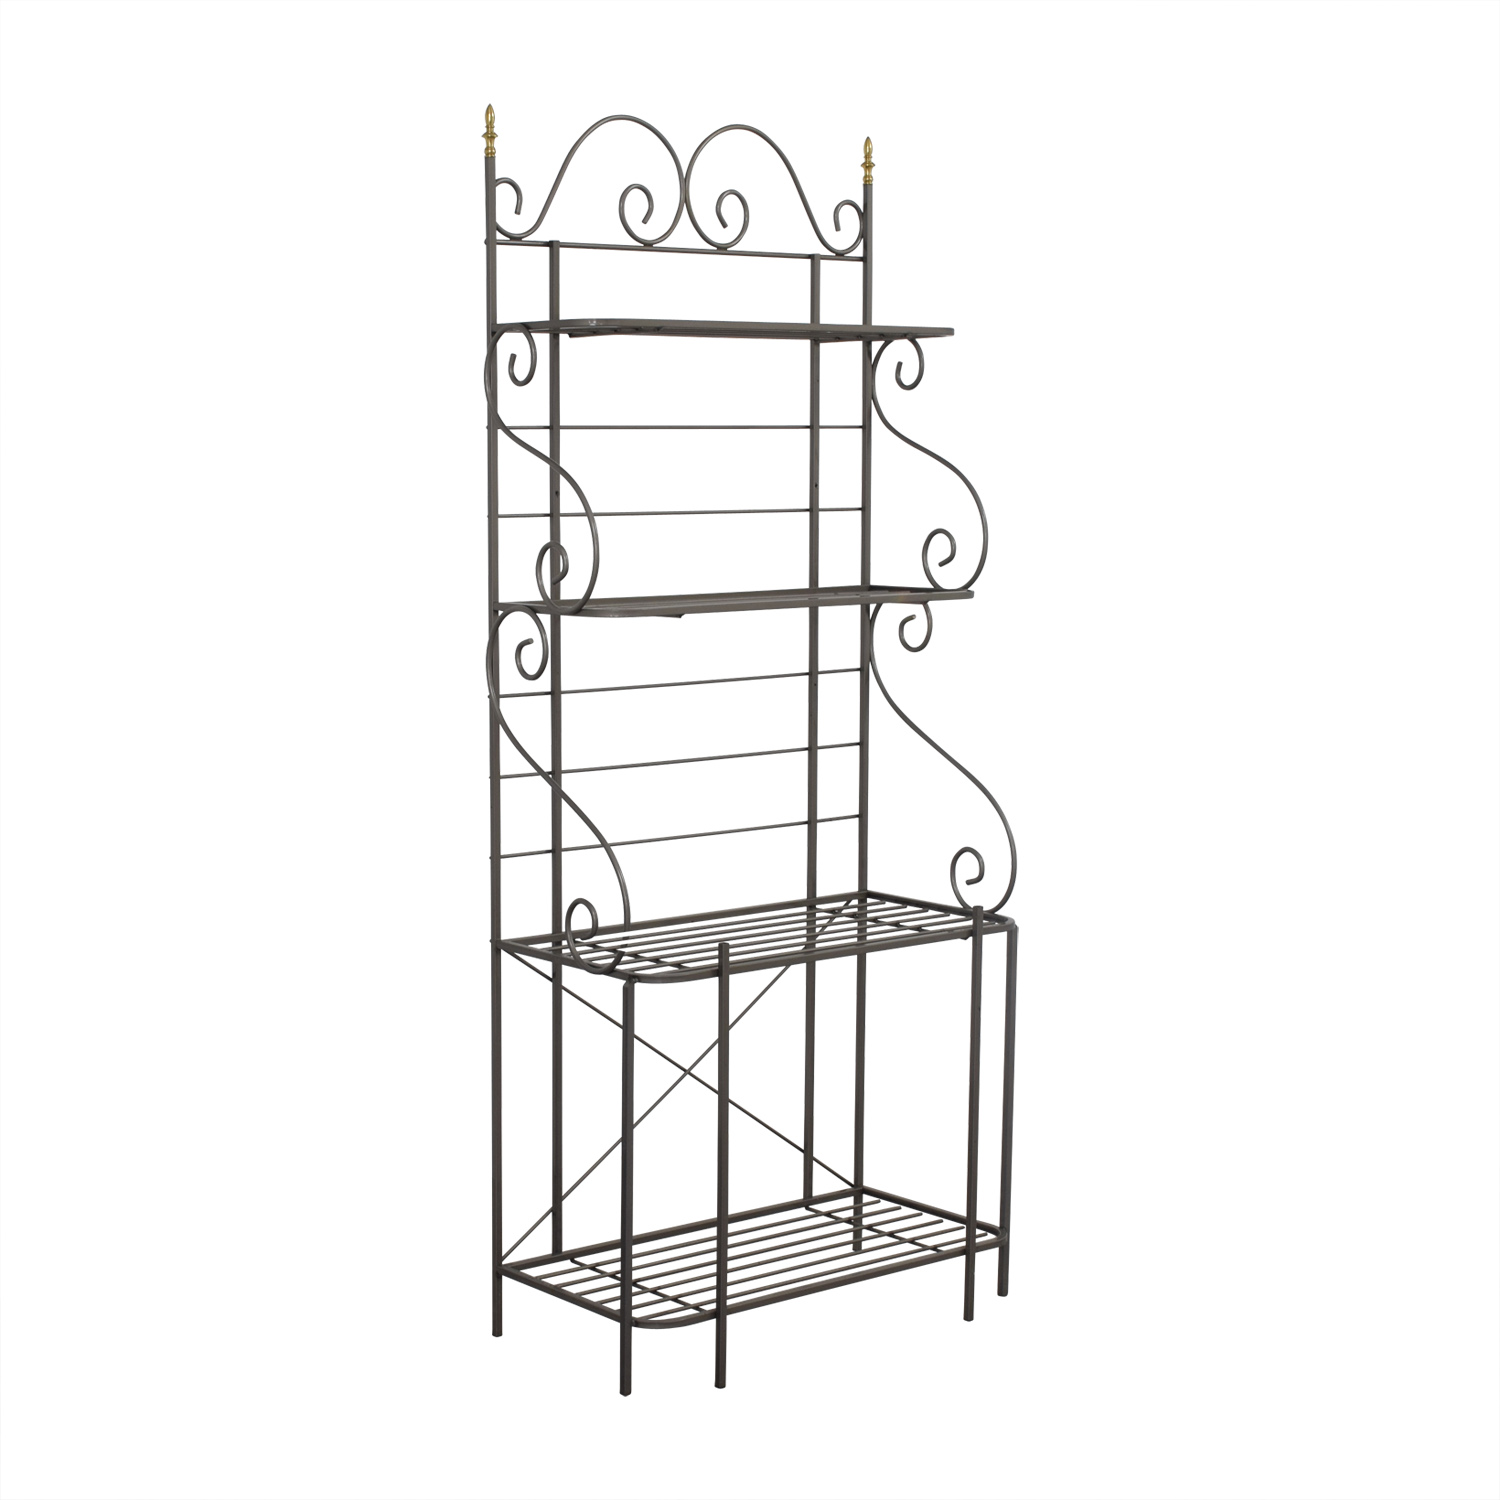 Ordinaire ... Shop Foremost Furniture Grey Metal Bakers Rack Foremost Furniture ...